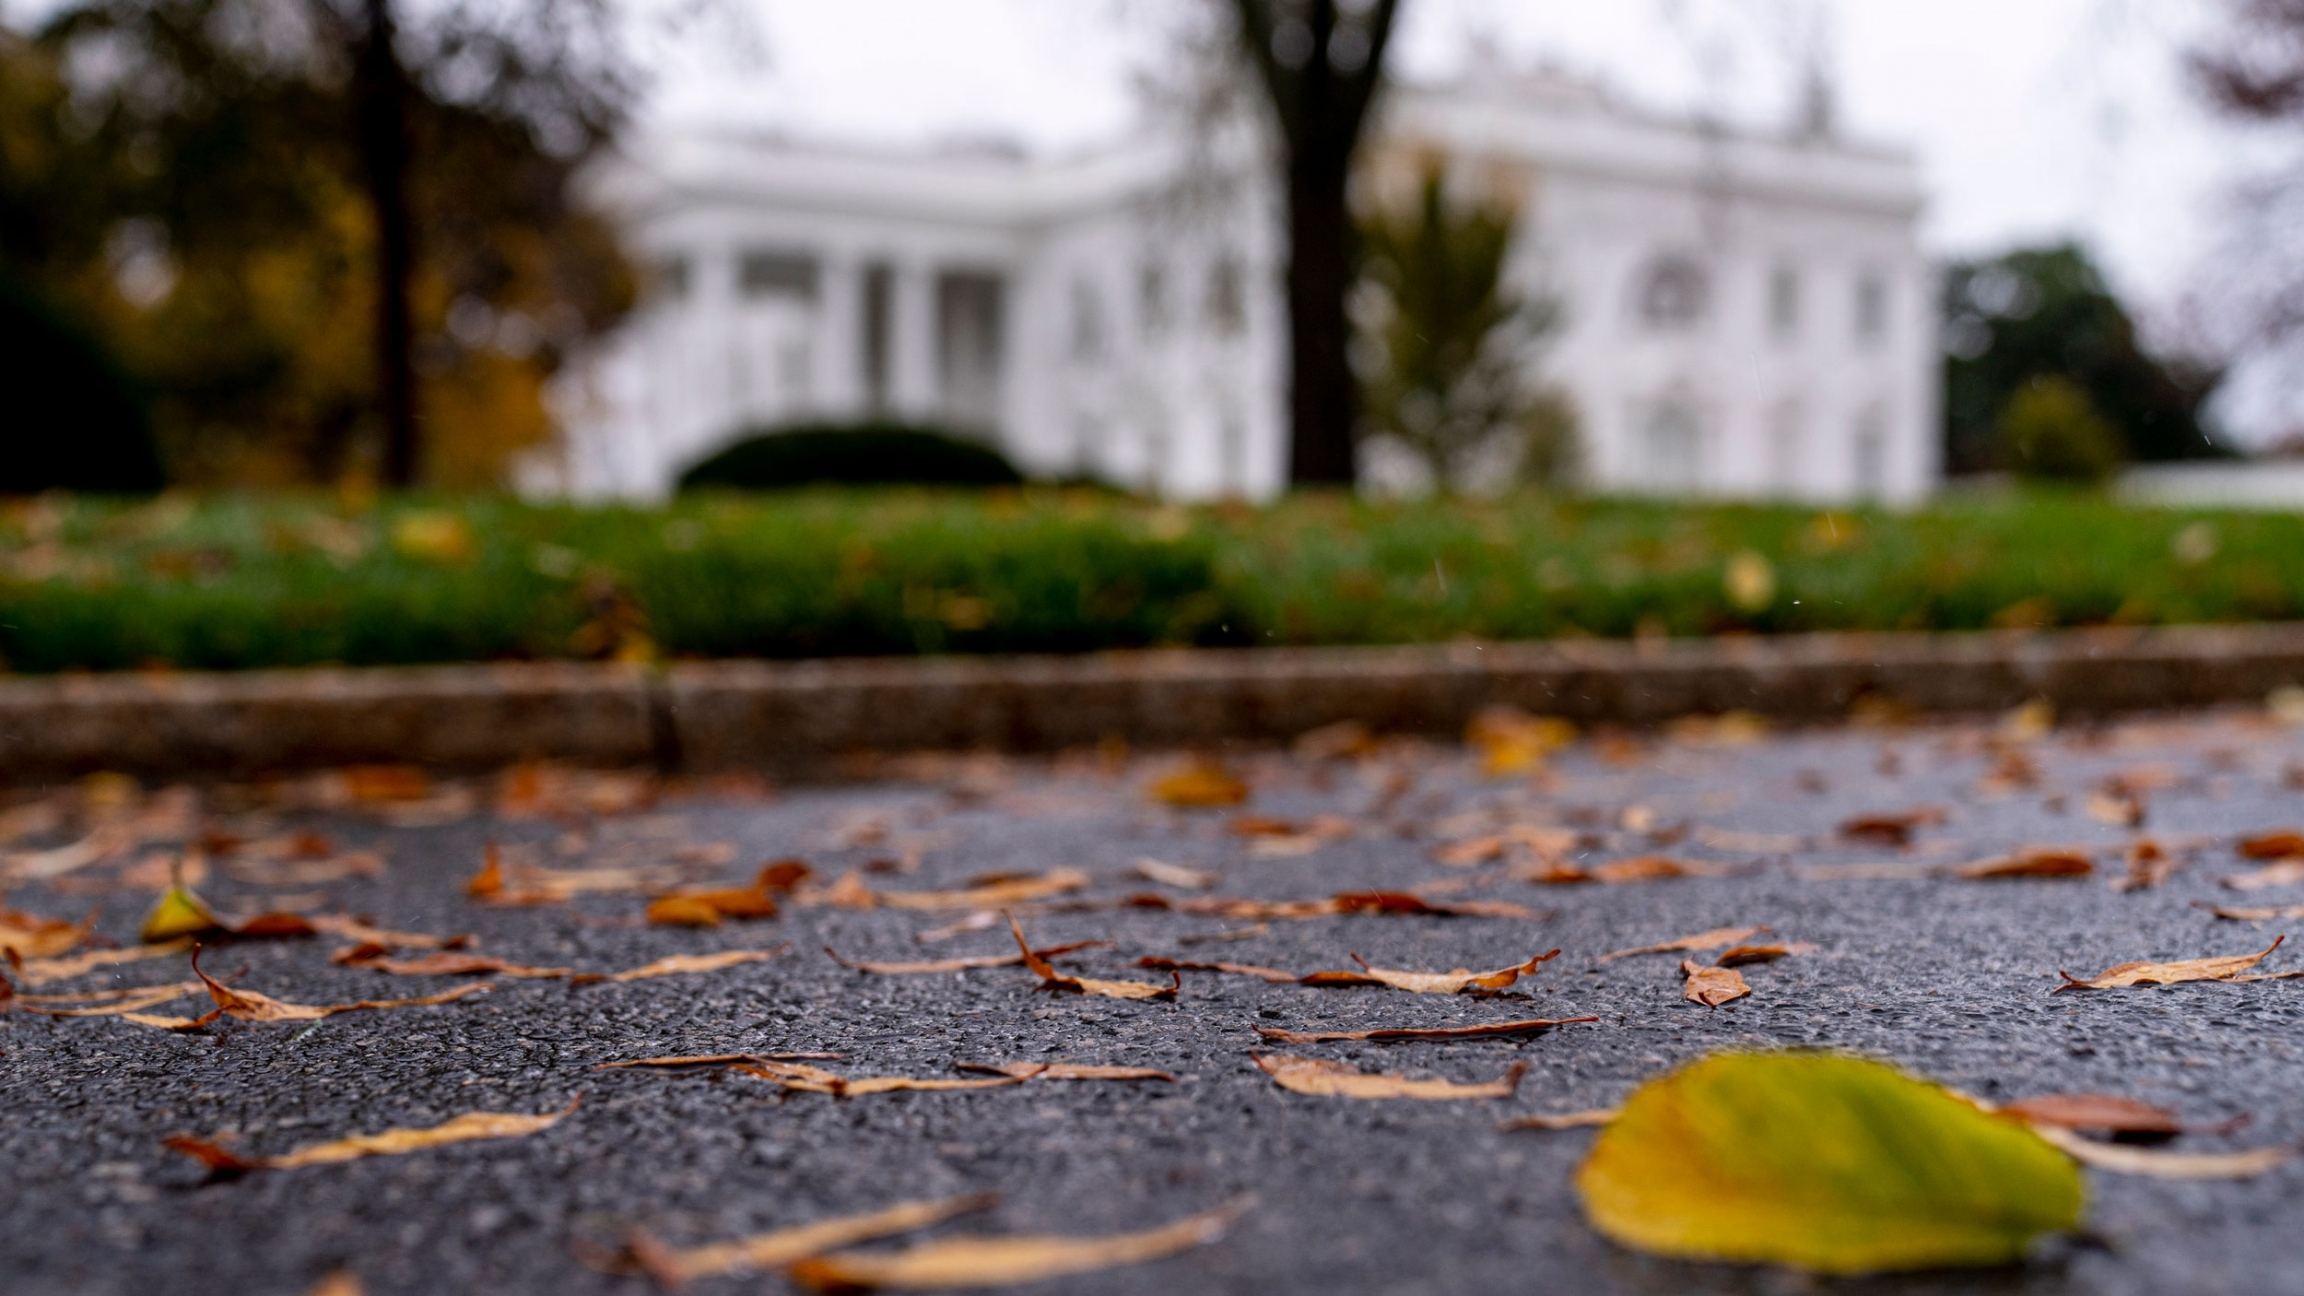 Leaves lie on the ground in focus with the White House in the distance in soft focus.